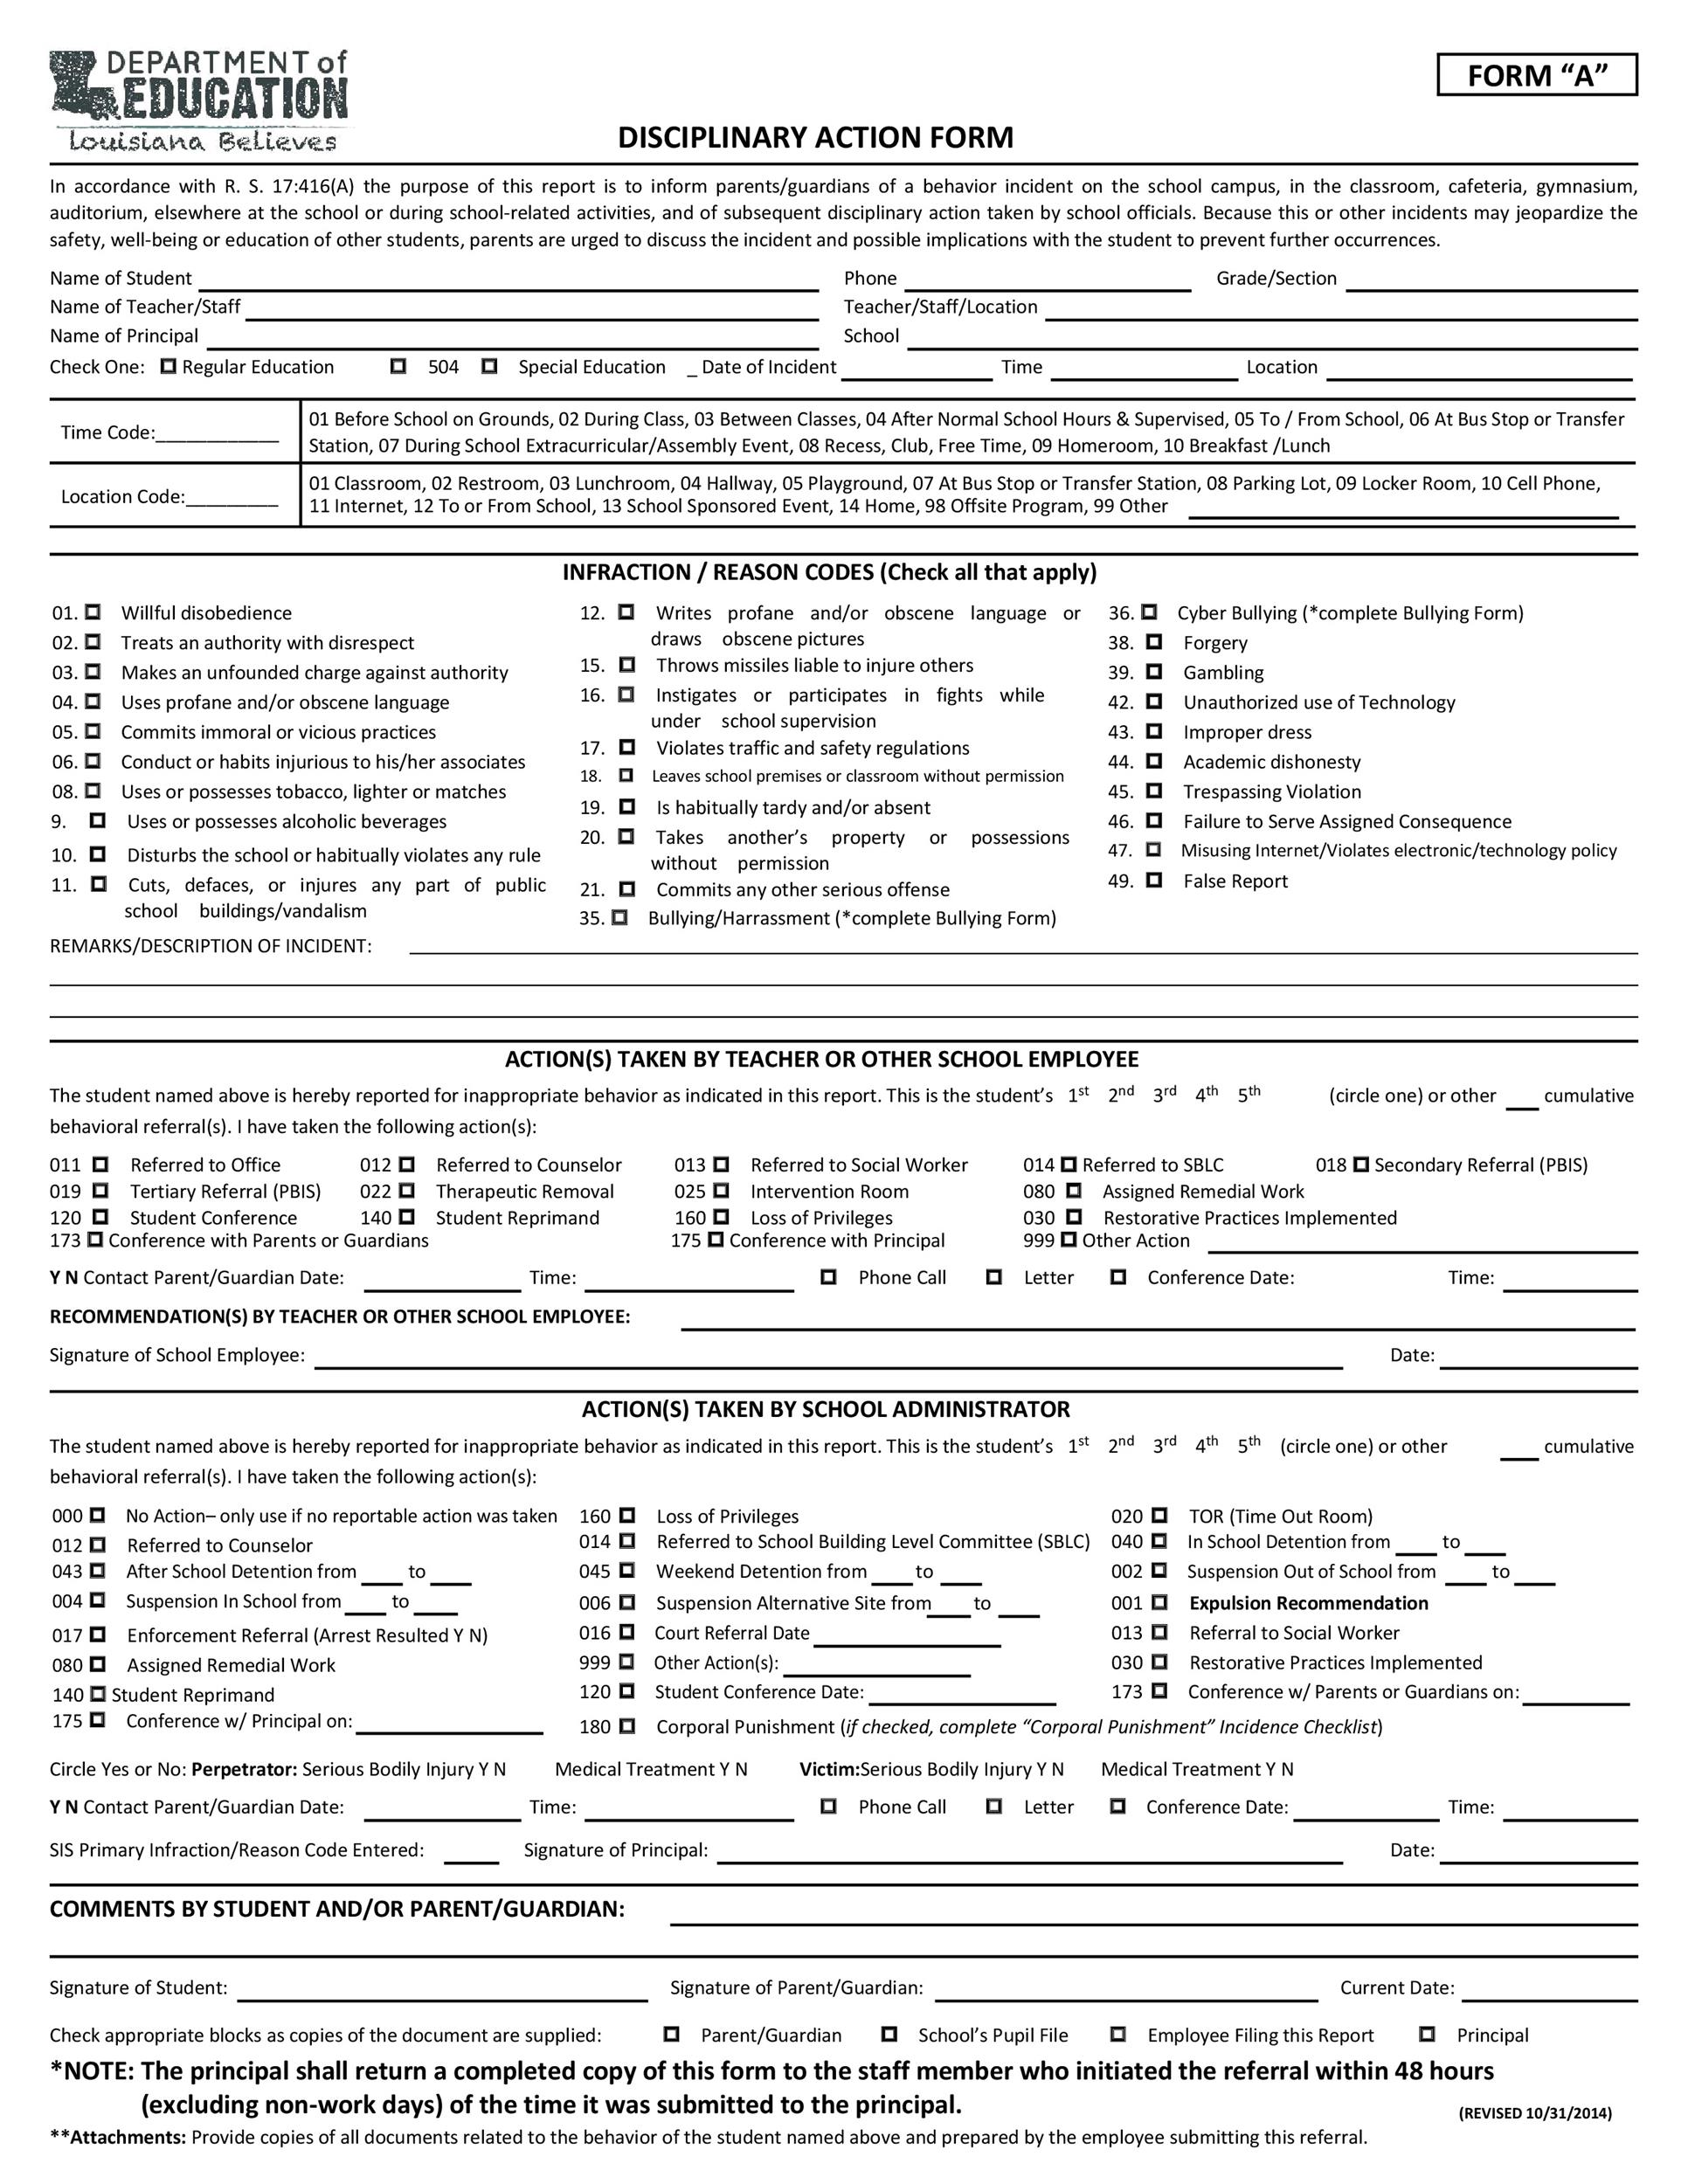 Free Disciplinary Action Form 39